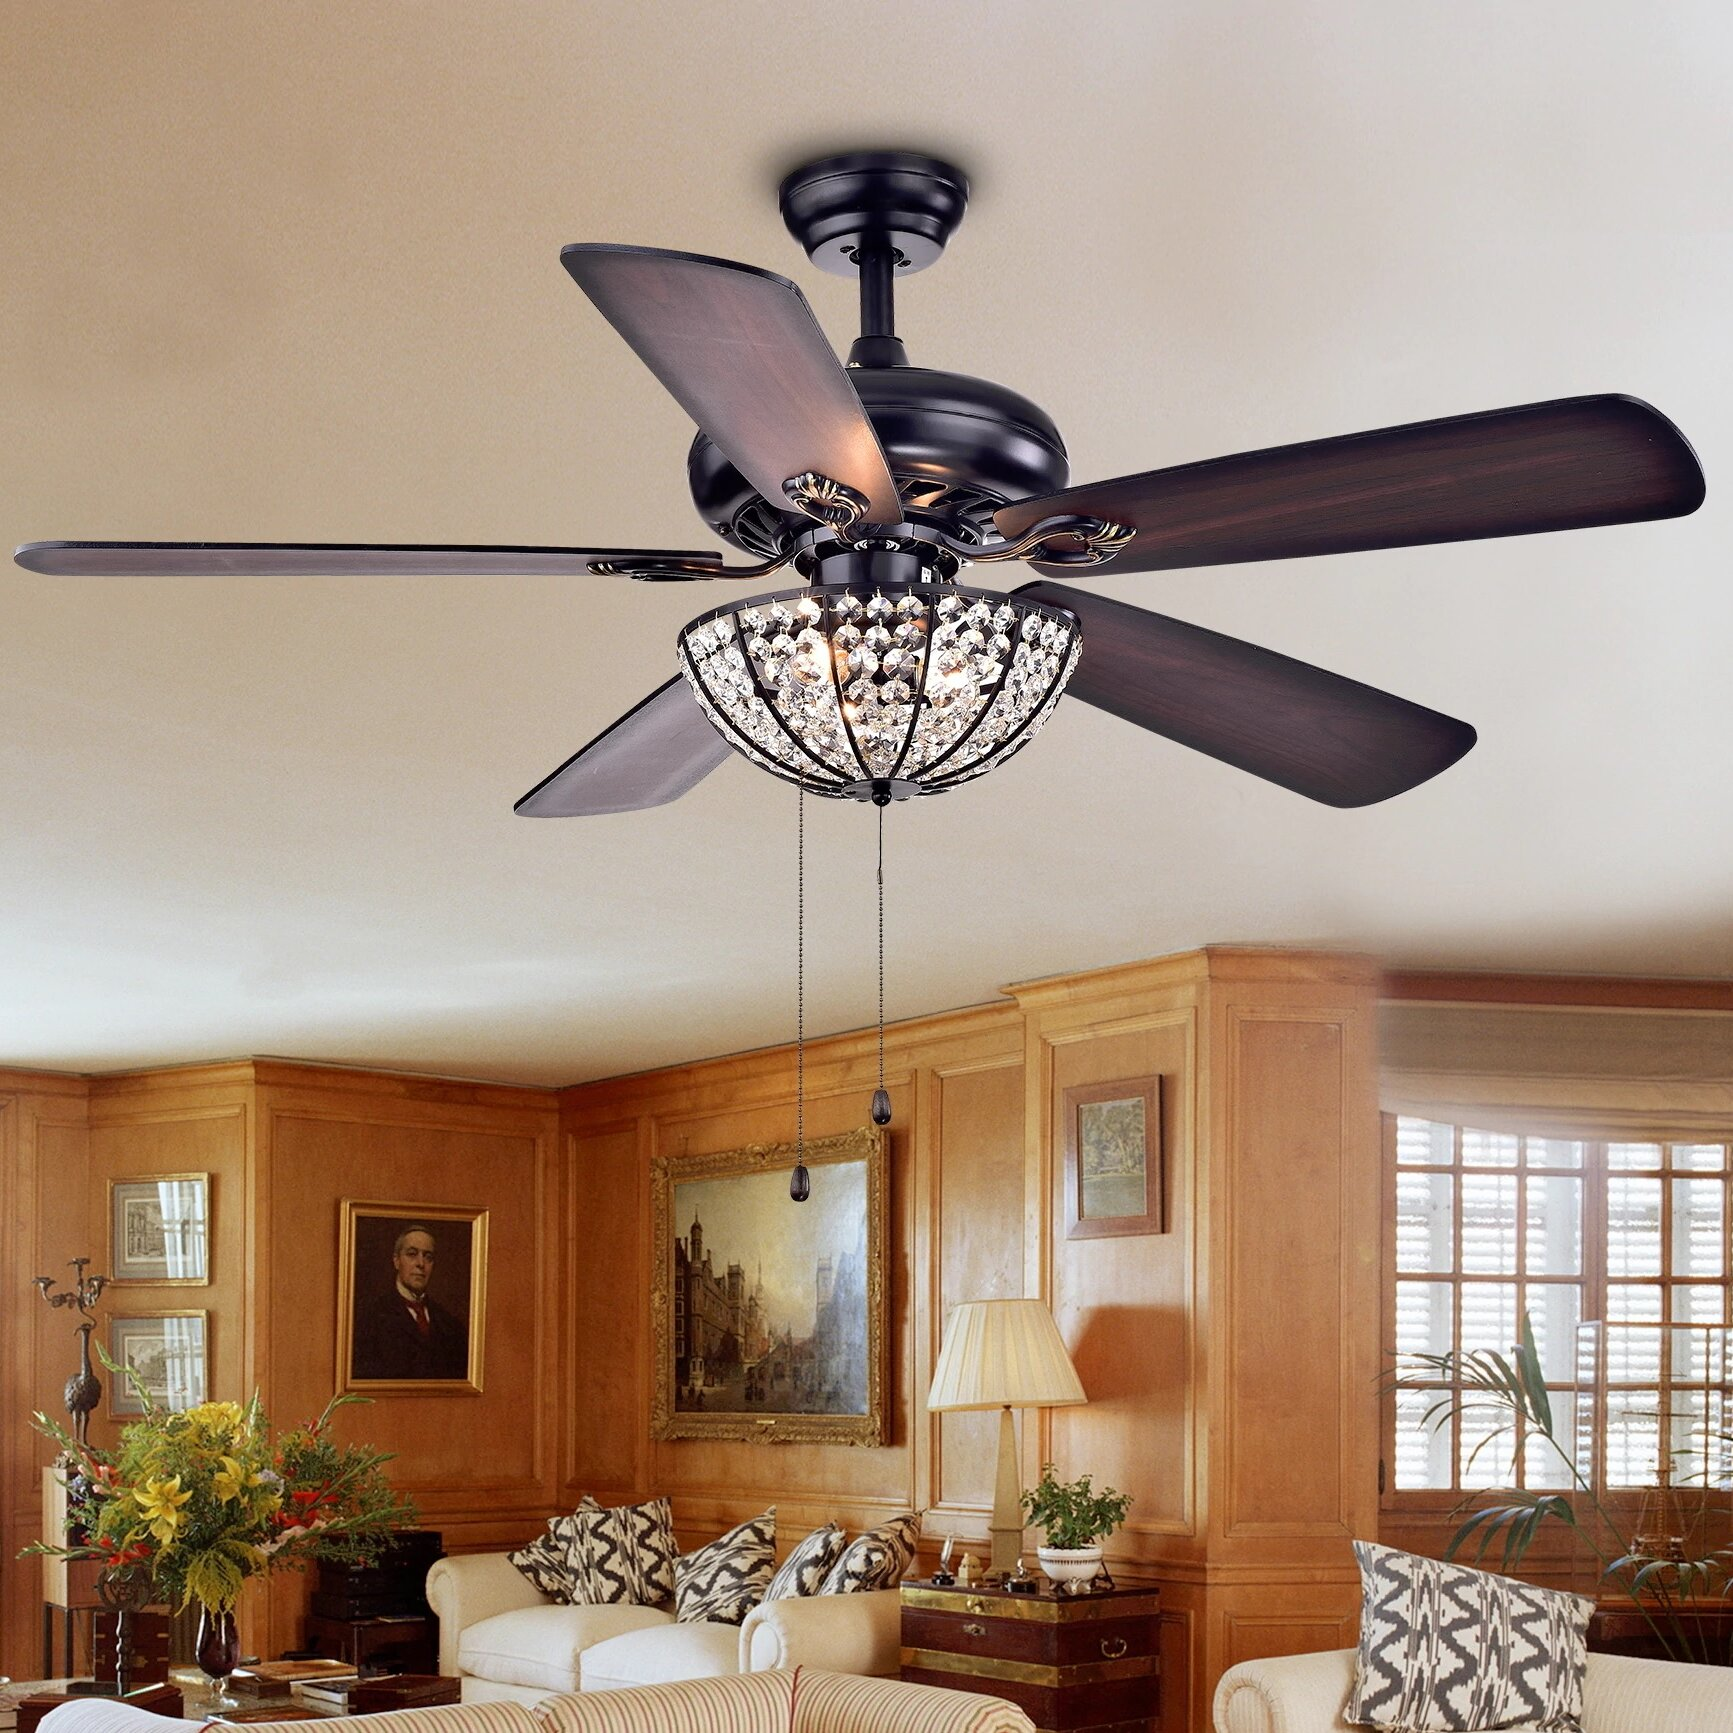 fans controlfetching to with modern fetching wood mount outdoor flush great your lights home remote decor fan and design idea light ceiling apply interior plus for